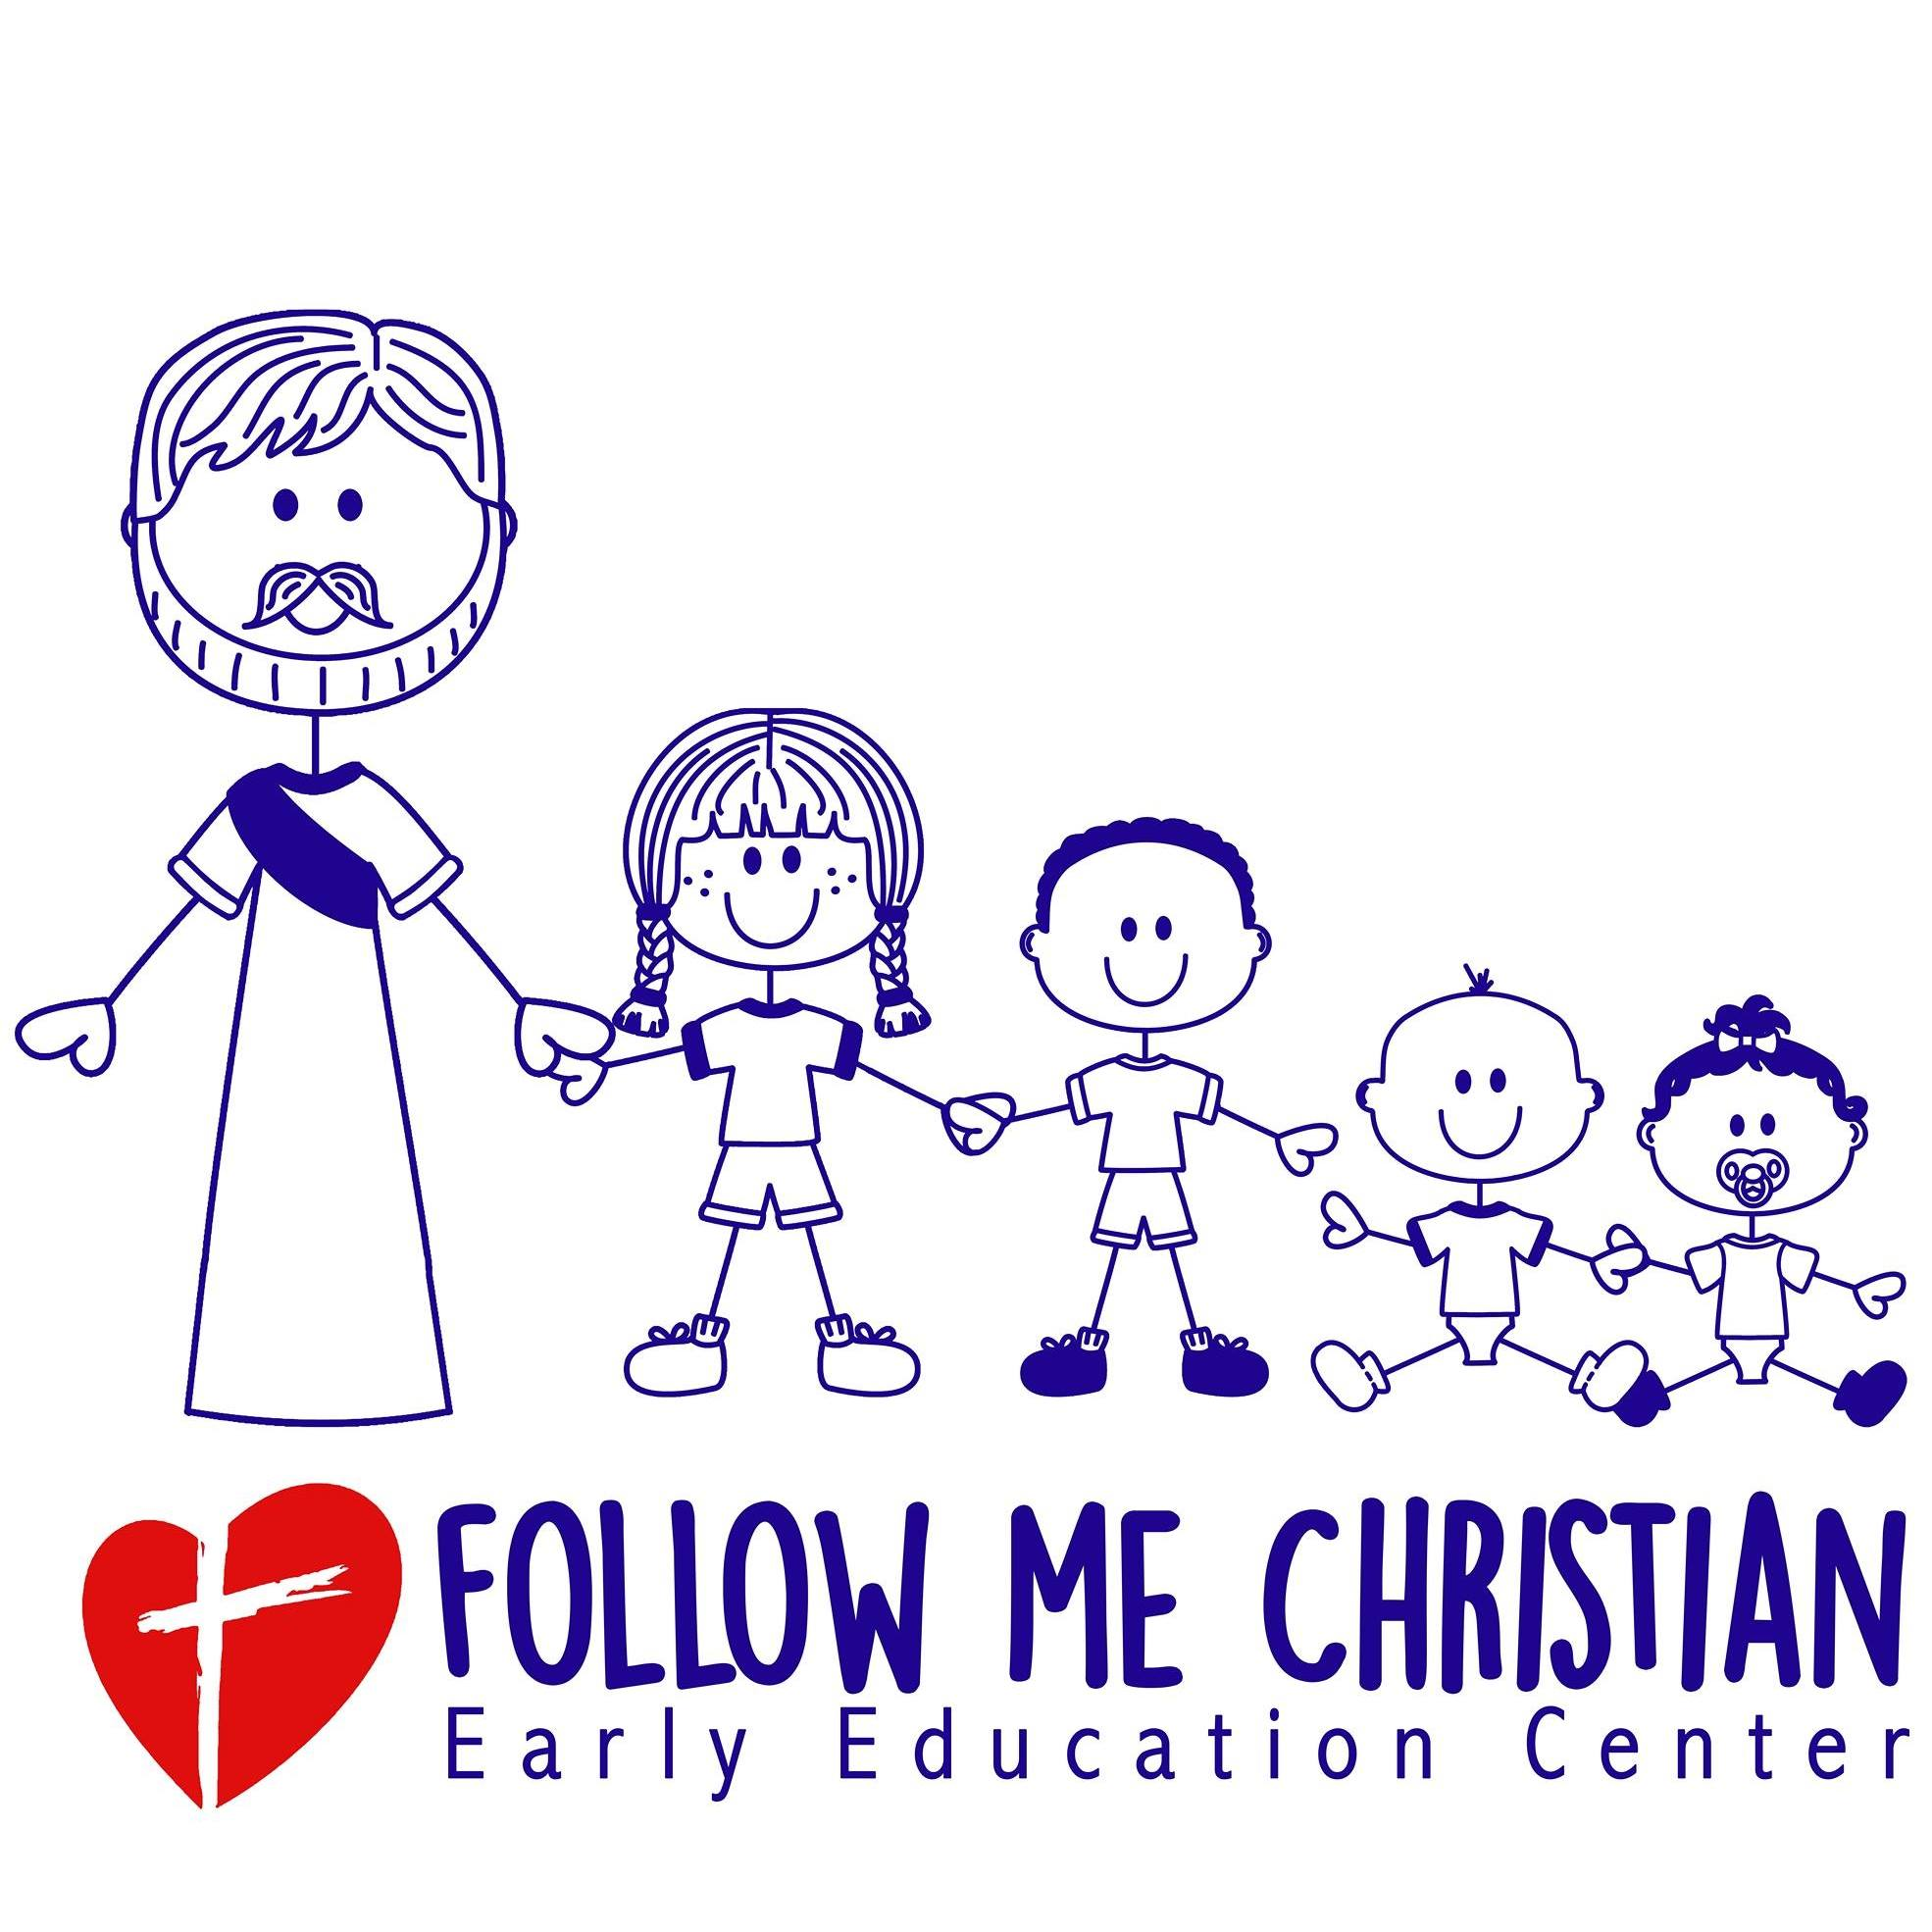 Follow Me Christian Early Education Center